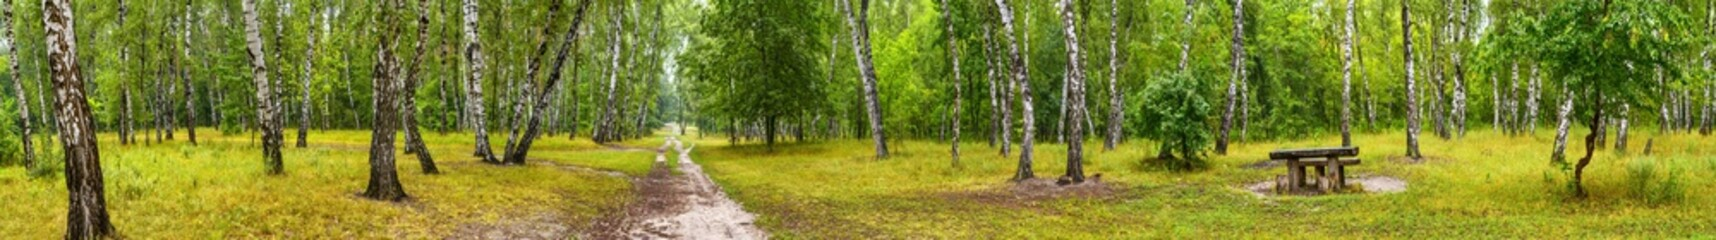 Birch grove with a road and bench on sunny summer day, huge panorama